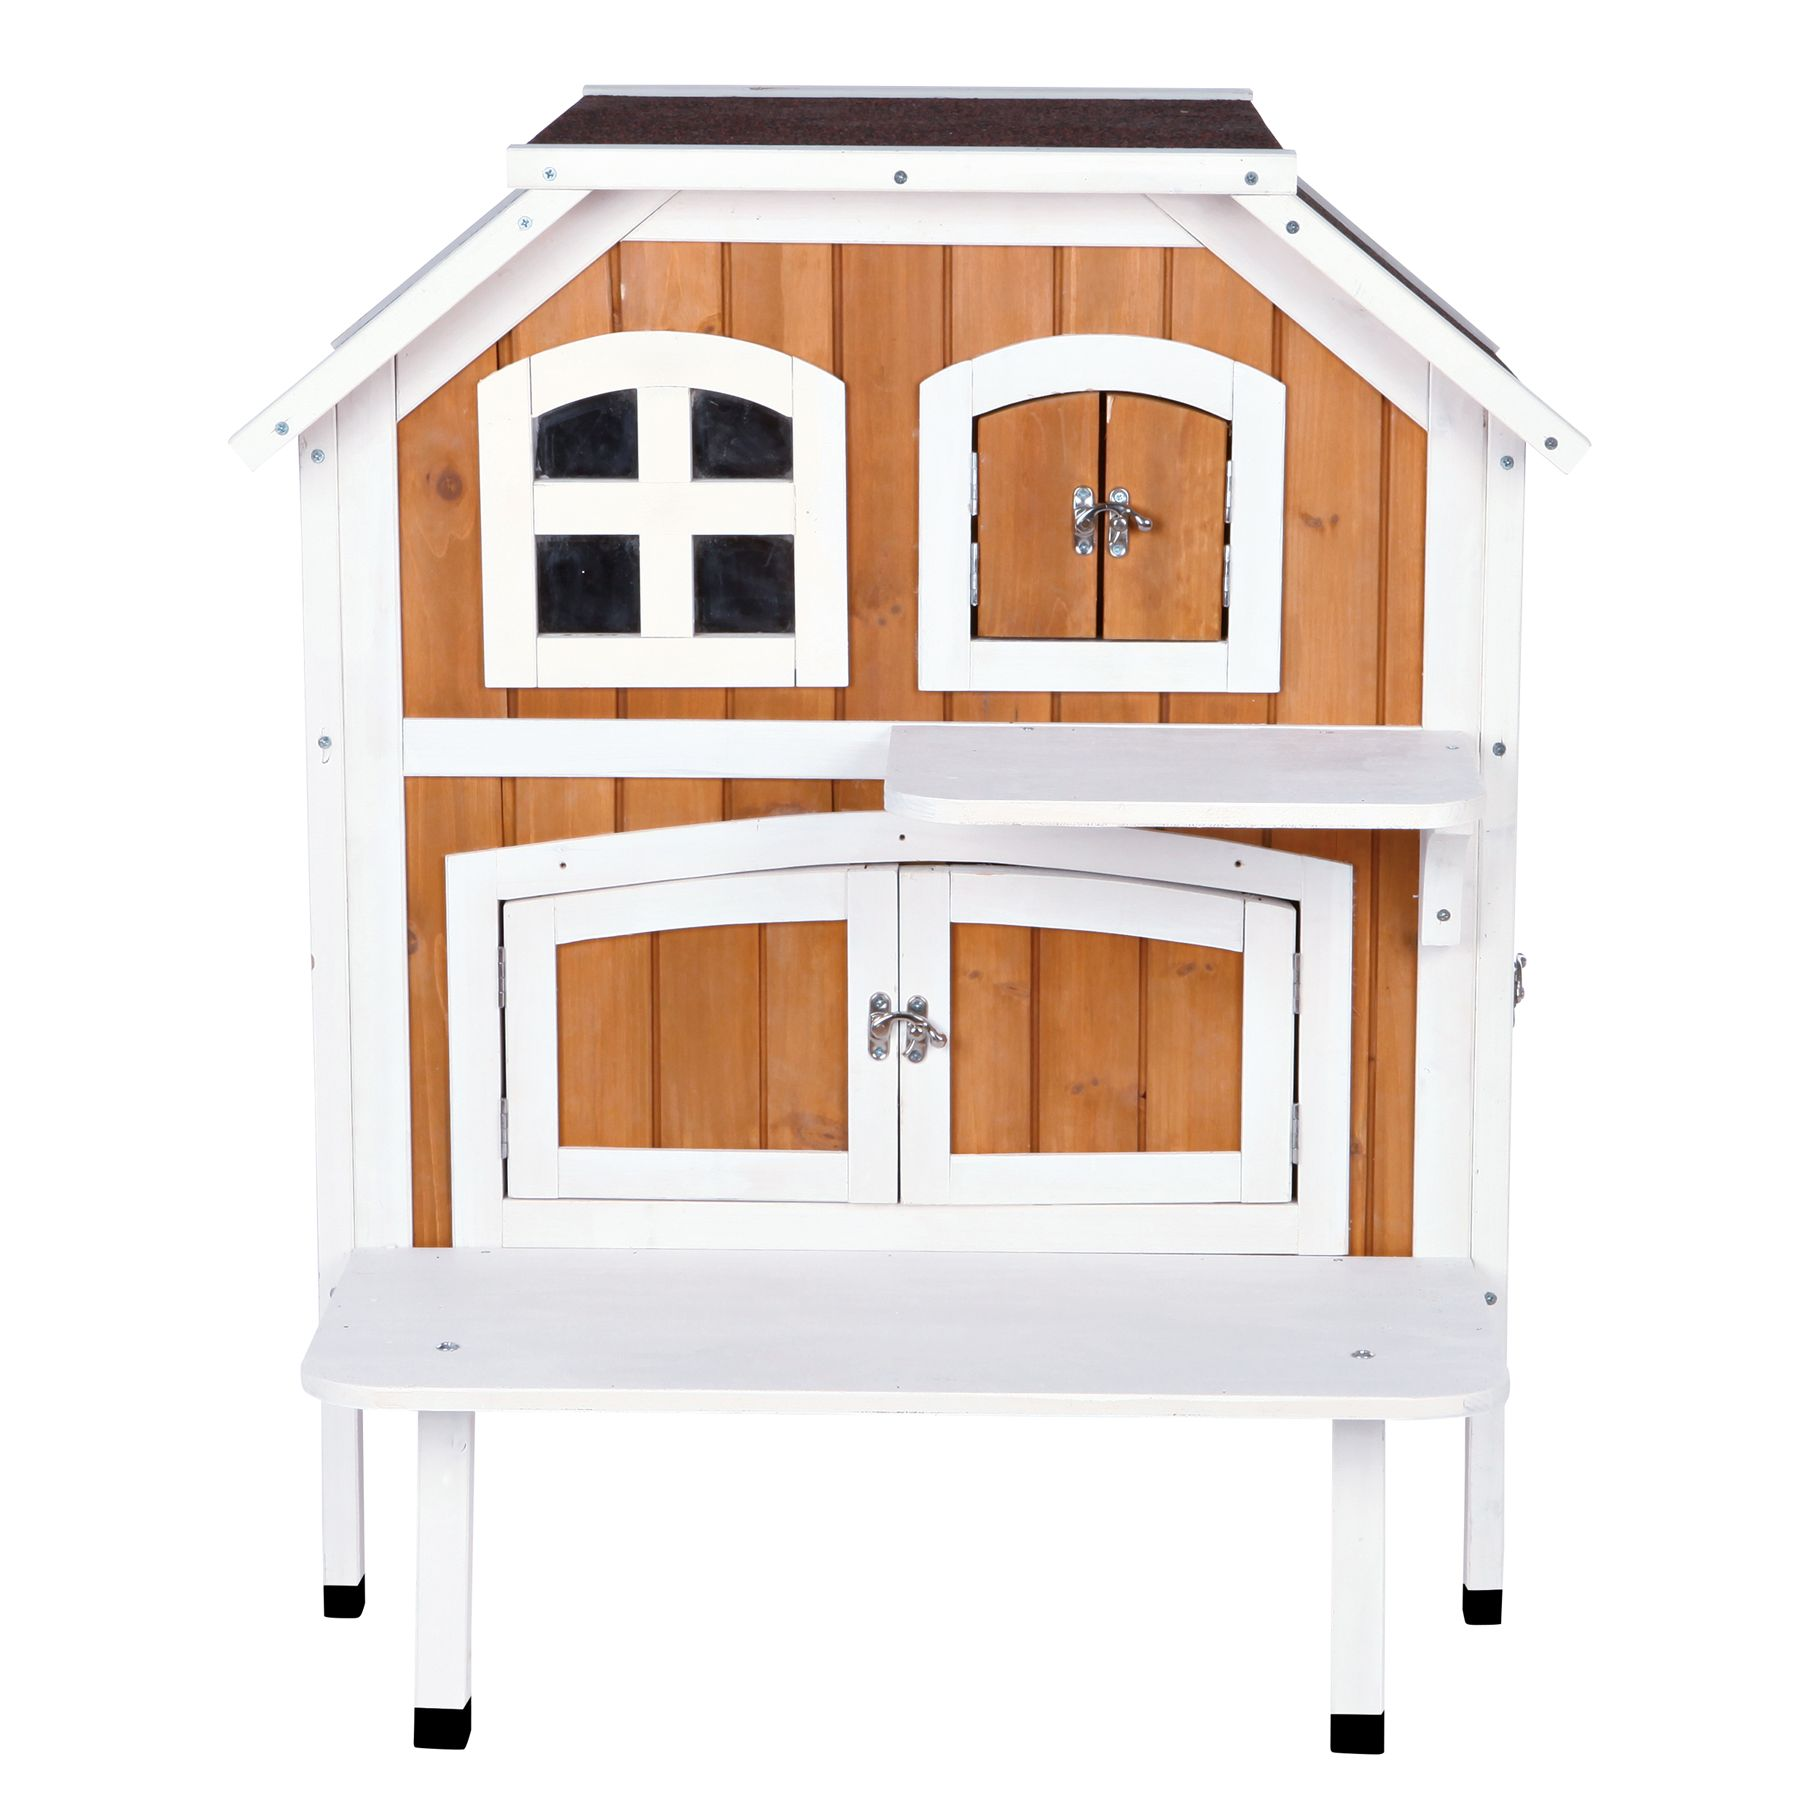 Trixie 2 Story Cat Cottage